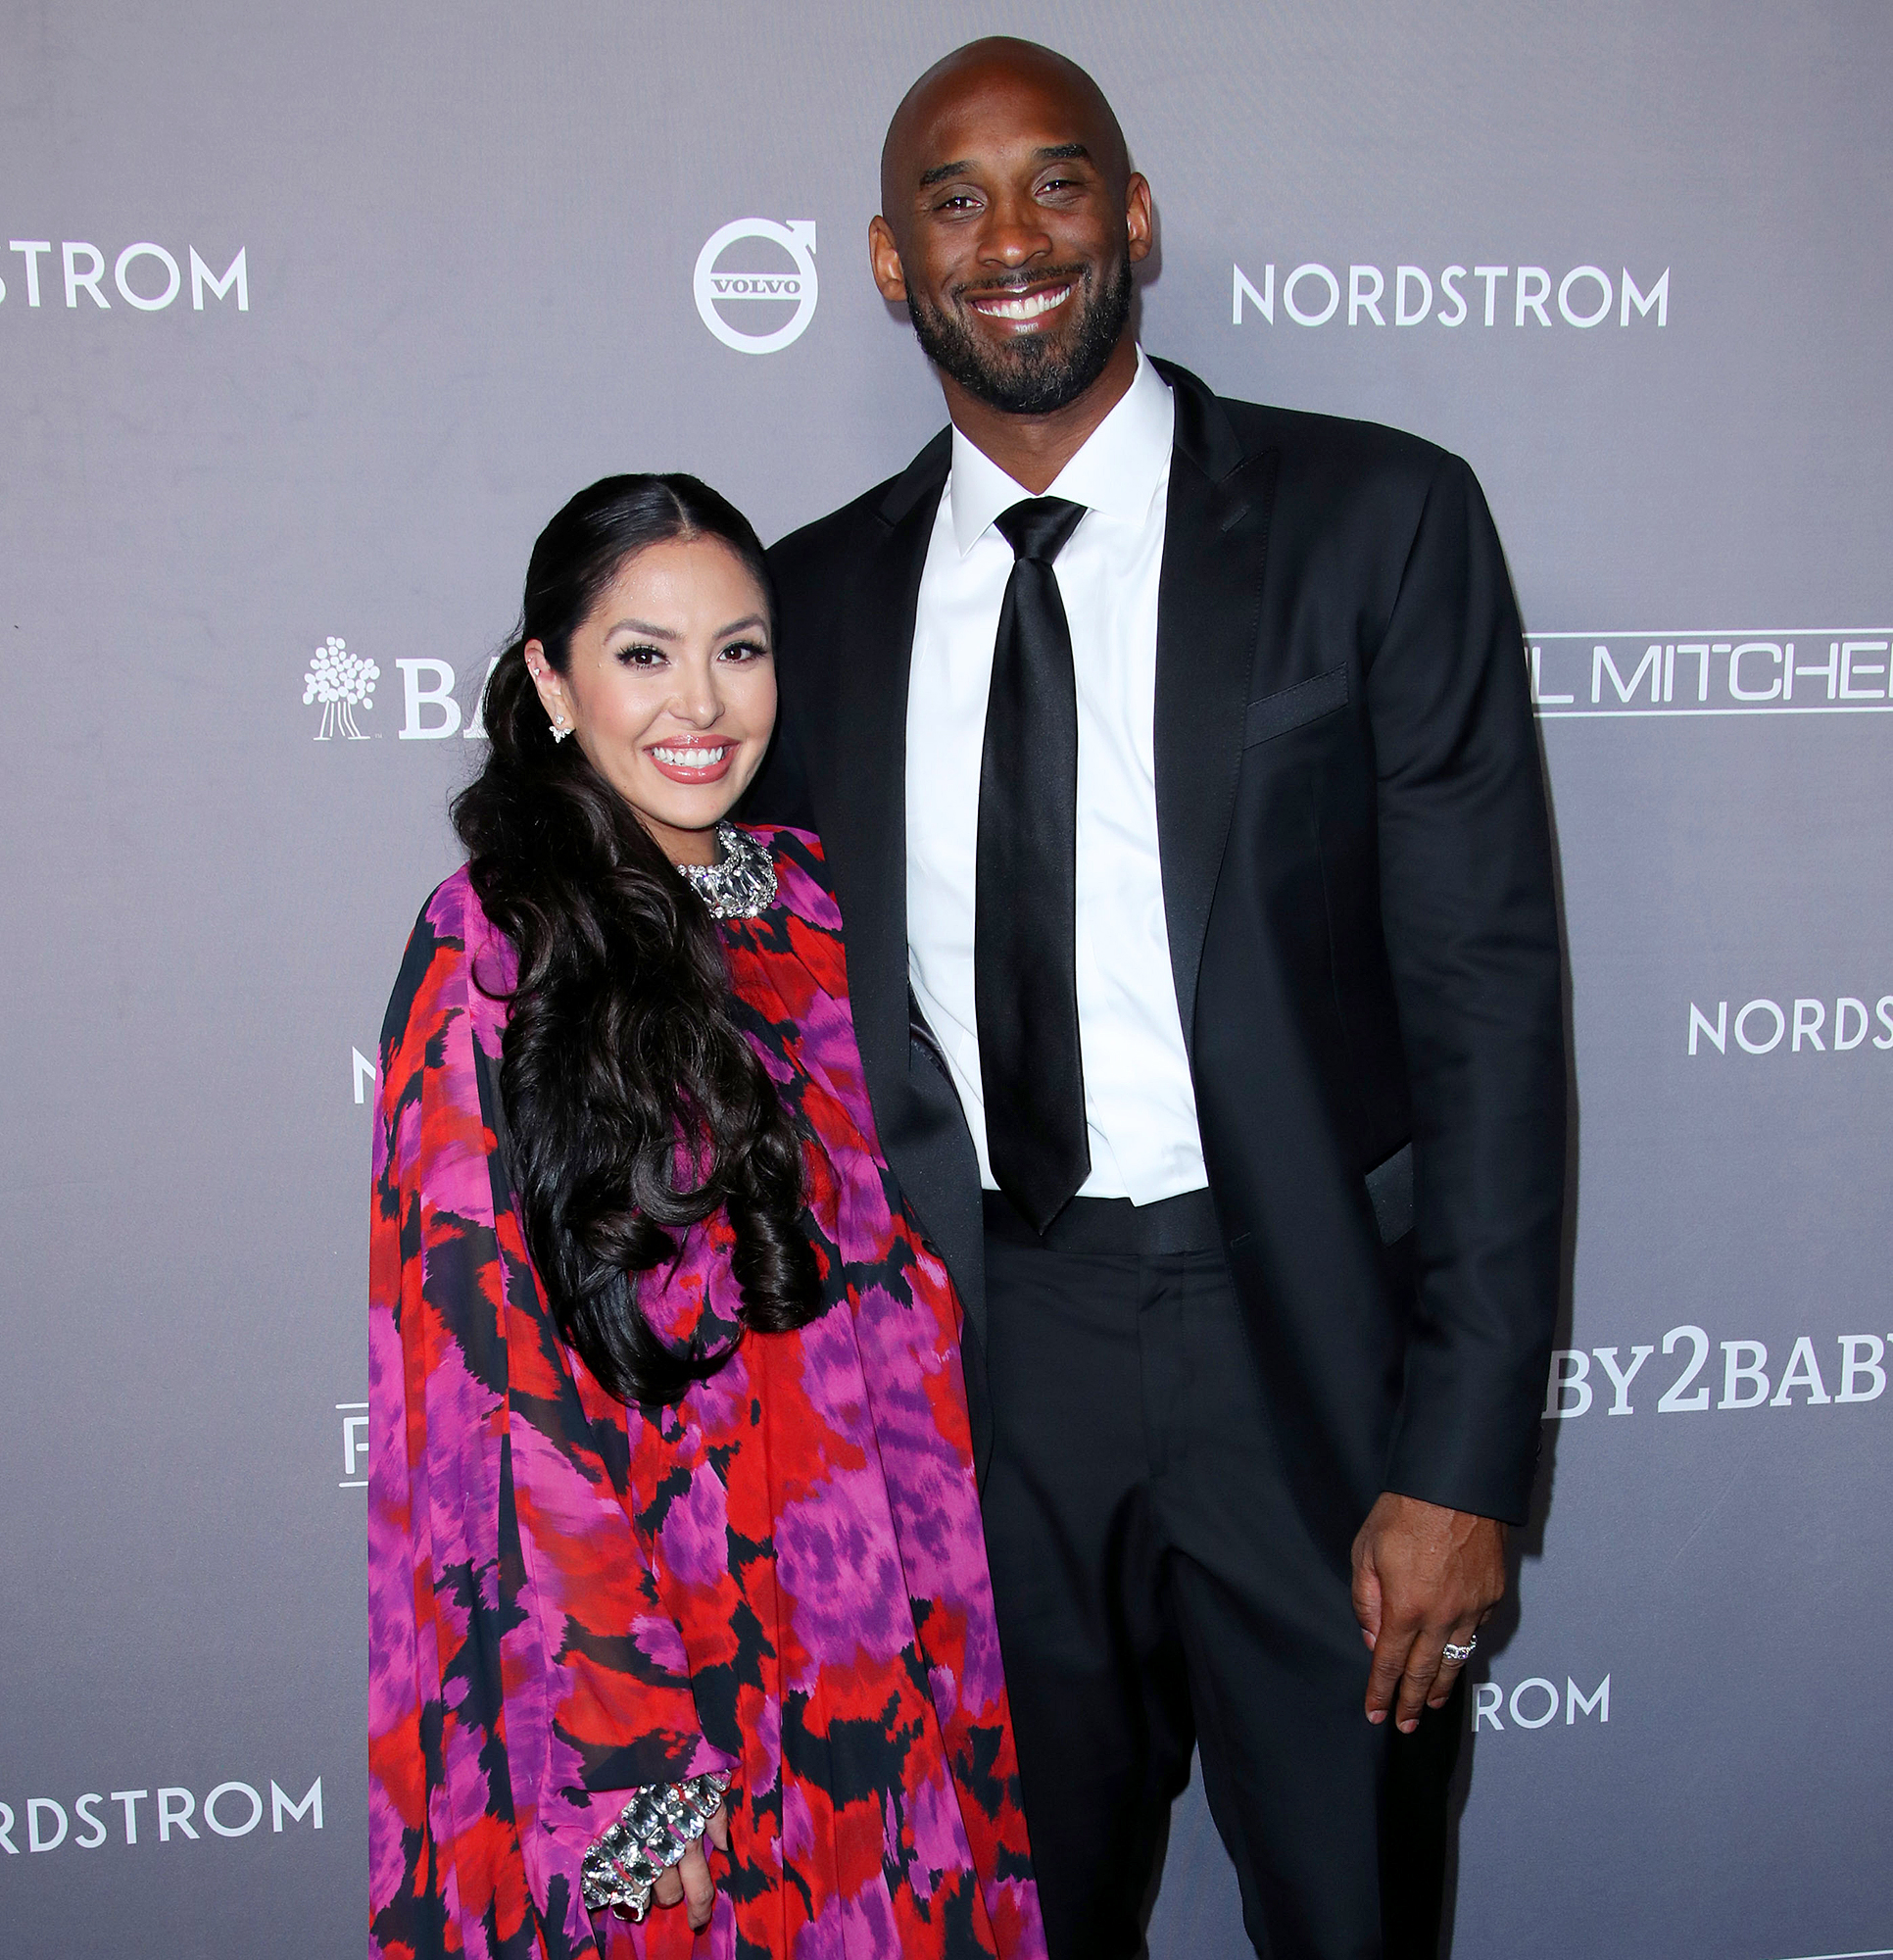 Kobe-Bryant-Celebrated-'Queen'-Vanessa-Bryant-on-Instagram-2-Months-Before-His-Death-2